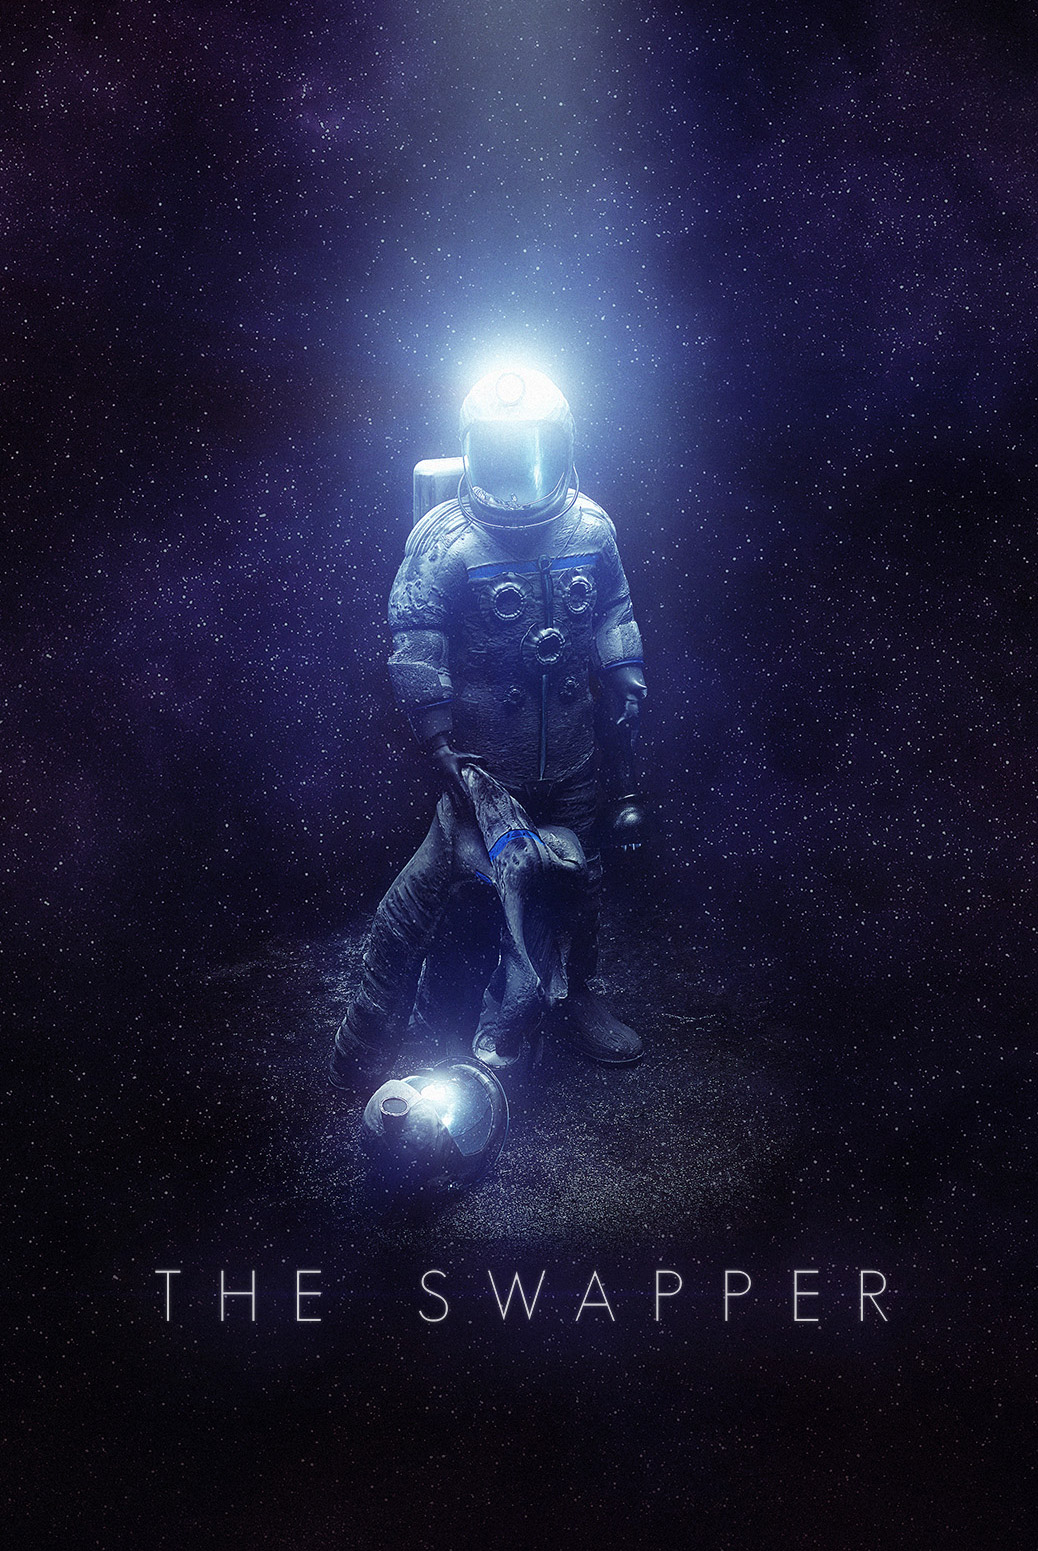 the-swapper-cover-art-with-logo.jpg